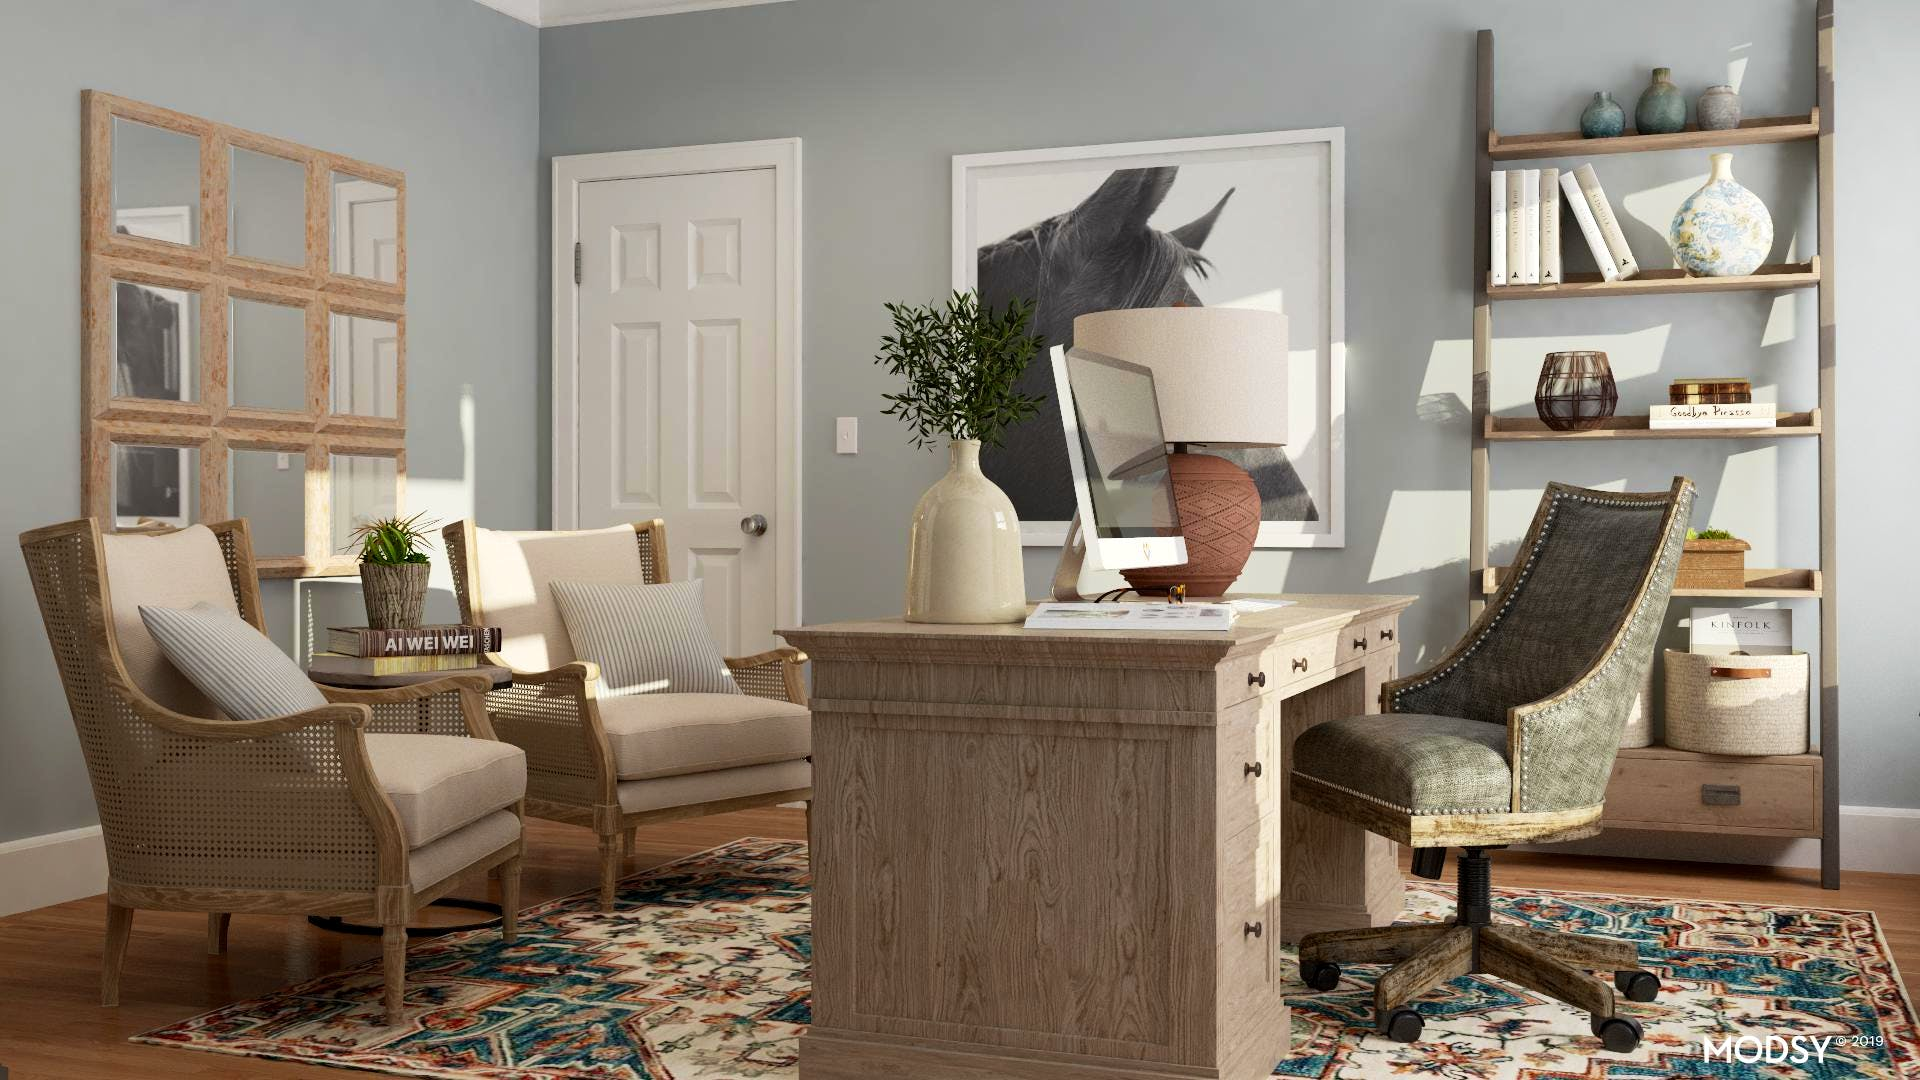 Moody Blues In A Rustic Home Office